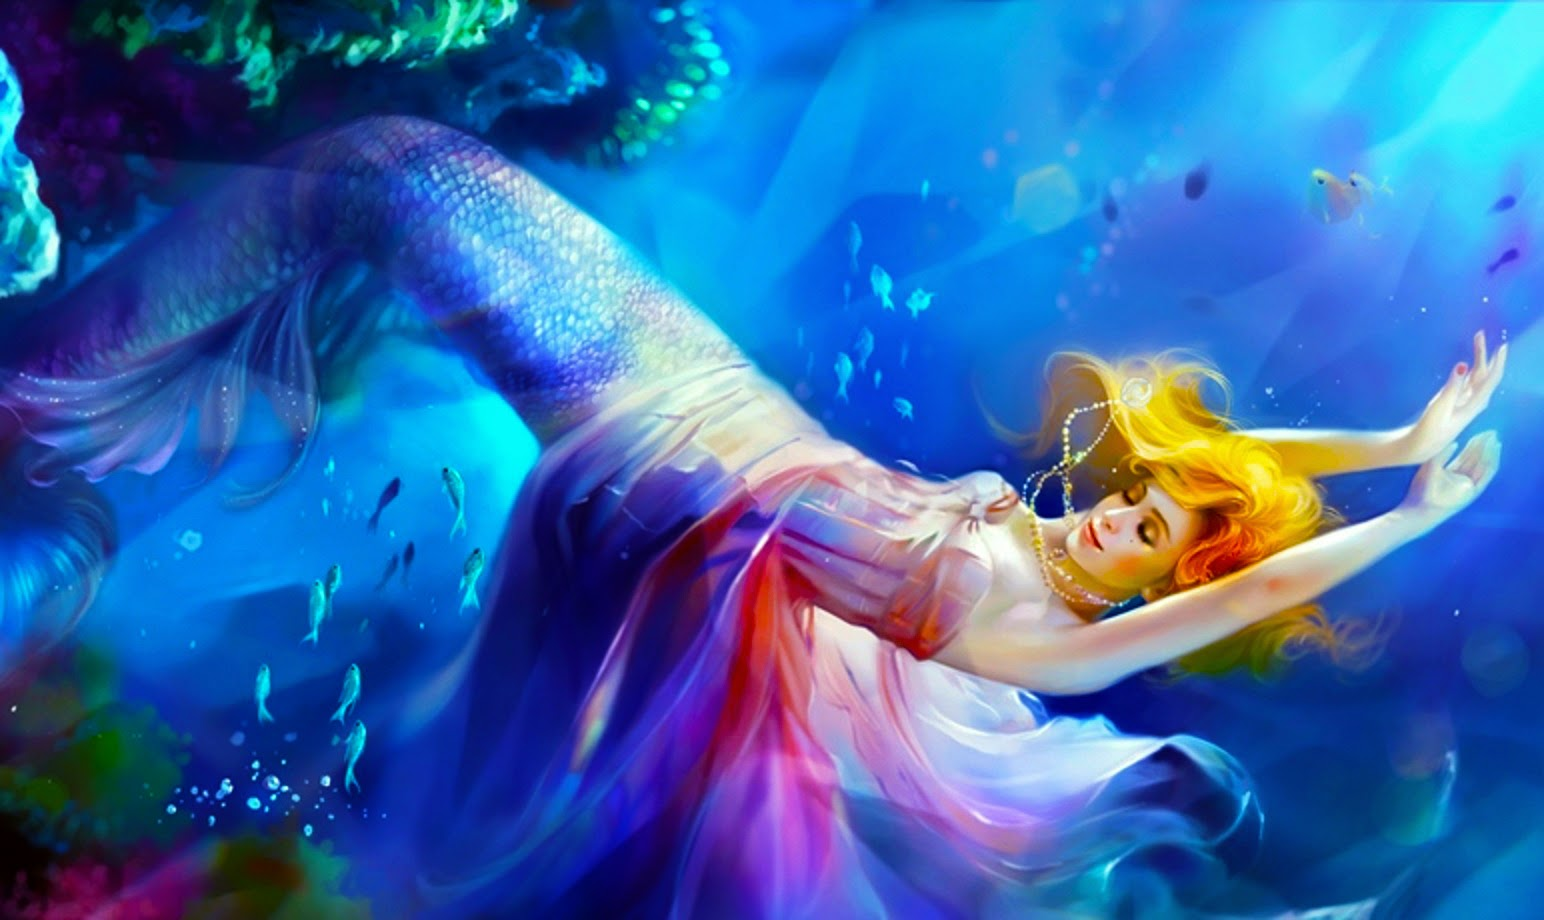 fantasy-mermaid-girl-playing-in-sea-swim-picture.jpg